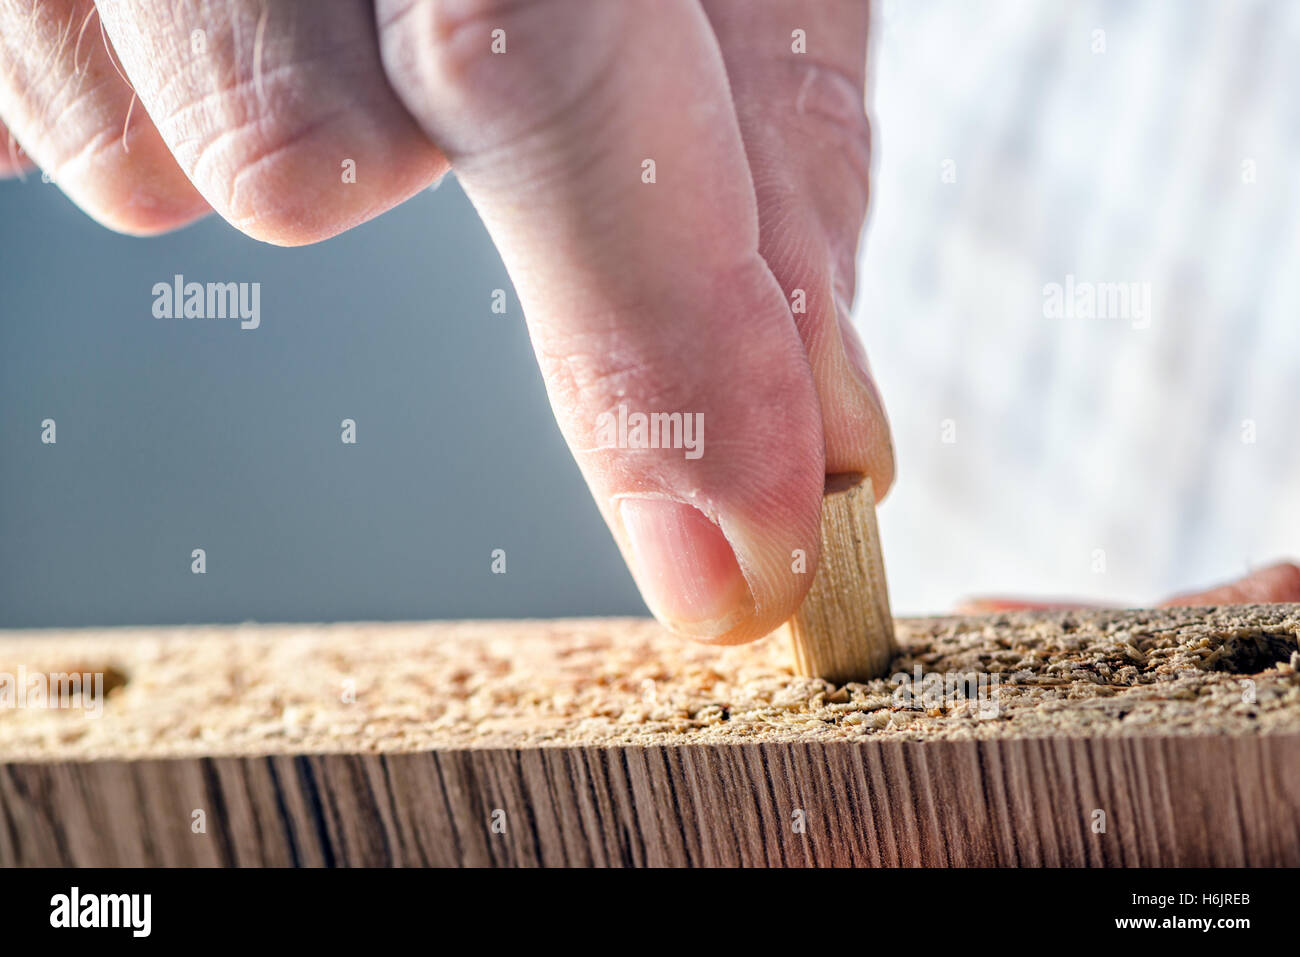 Man assembling furniture at home, male hand with wooden dowel pins and plywood board - Stock Image